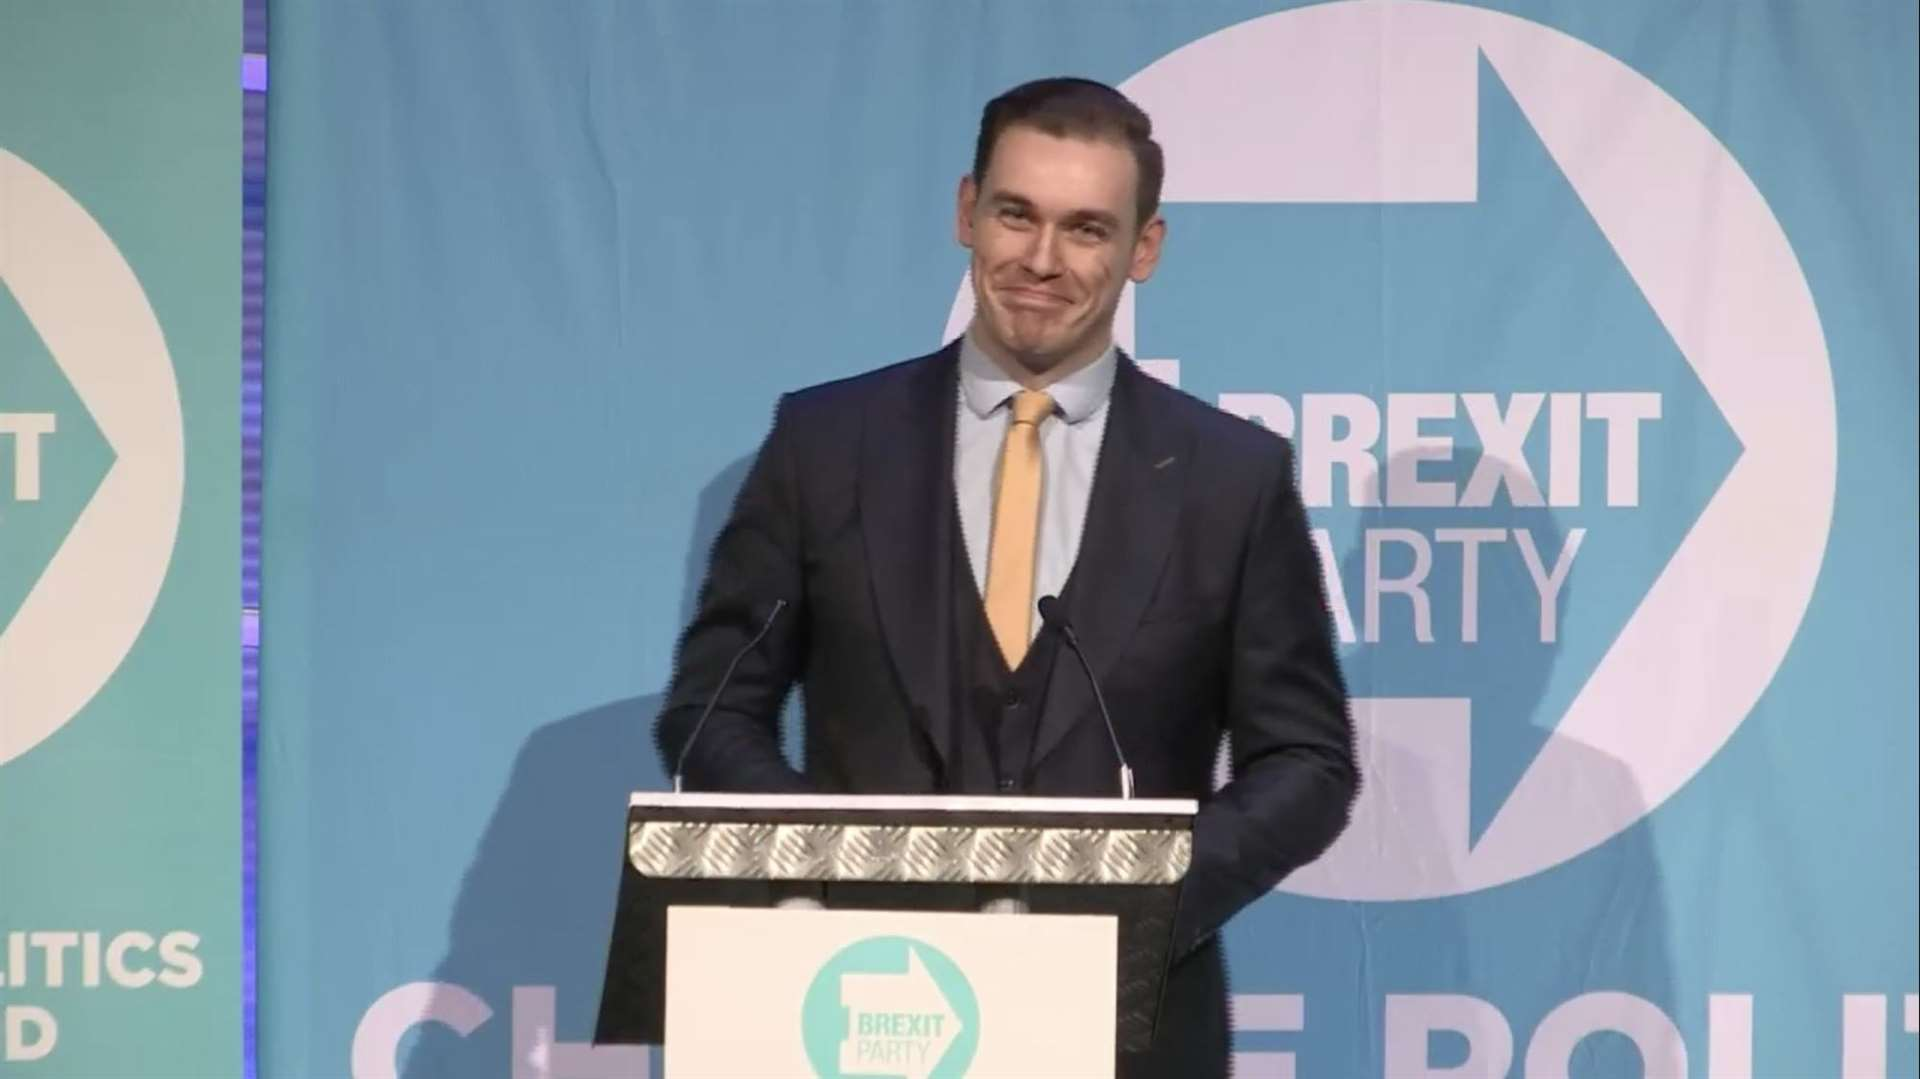 Michael Heaver, East of England MEP (11454540)